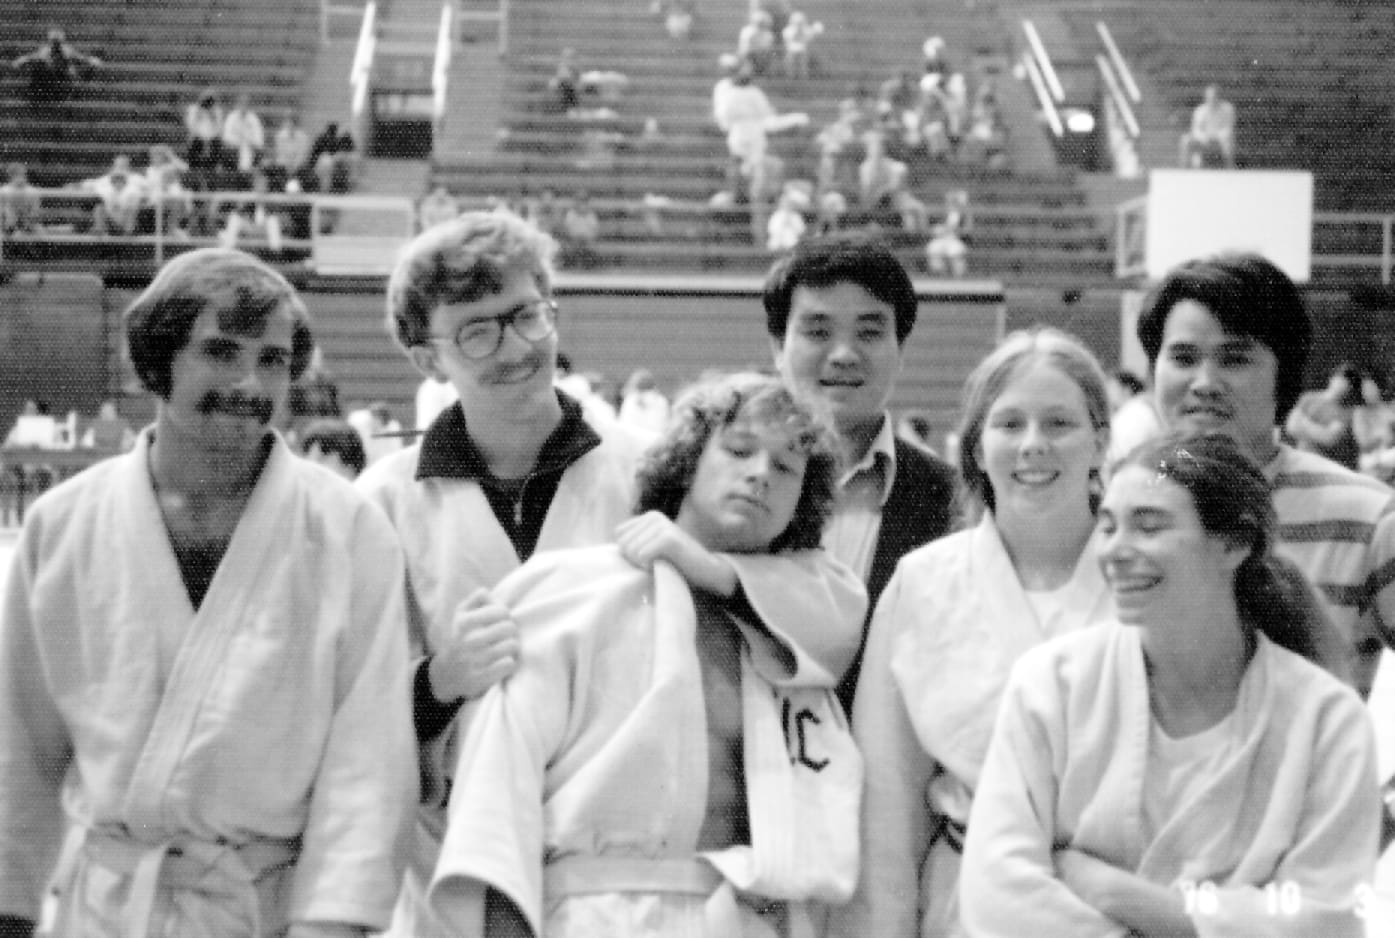 Photo from the 1970s of Dr. Min with six judo students.